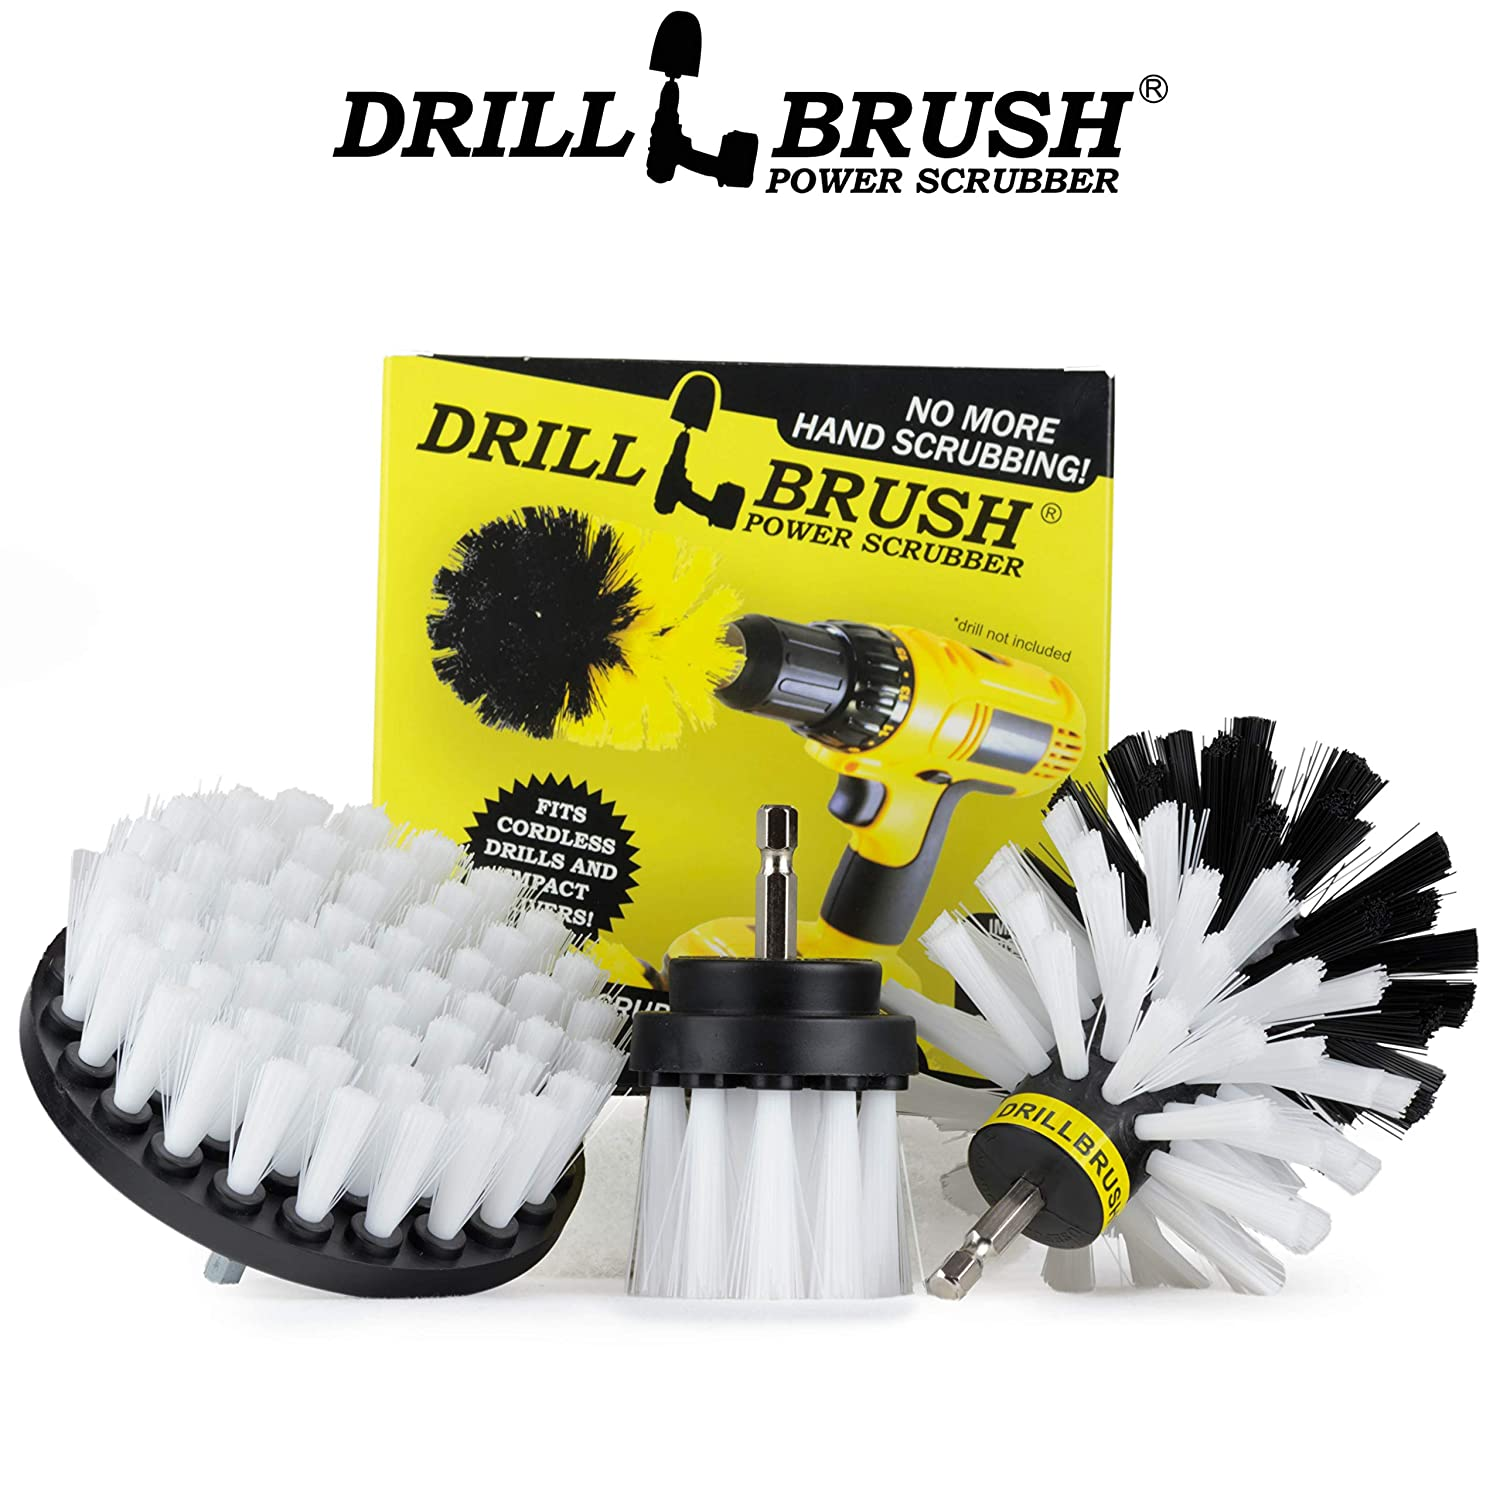 Drill Brush Drill Brush Attachment Drill Brush Kit Nylon Drill Brush Drill Brush Attachment for Cleaning Grill Brush Original Drill Brush Power Scrubber Cleaning Drill Brush Set